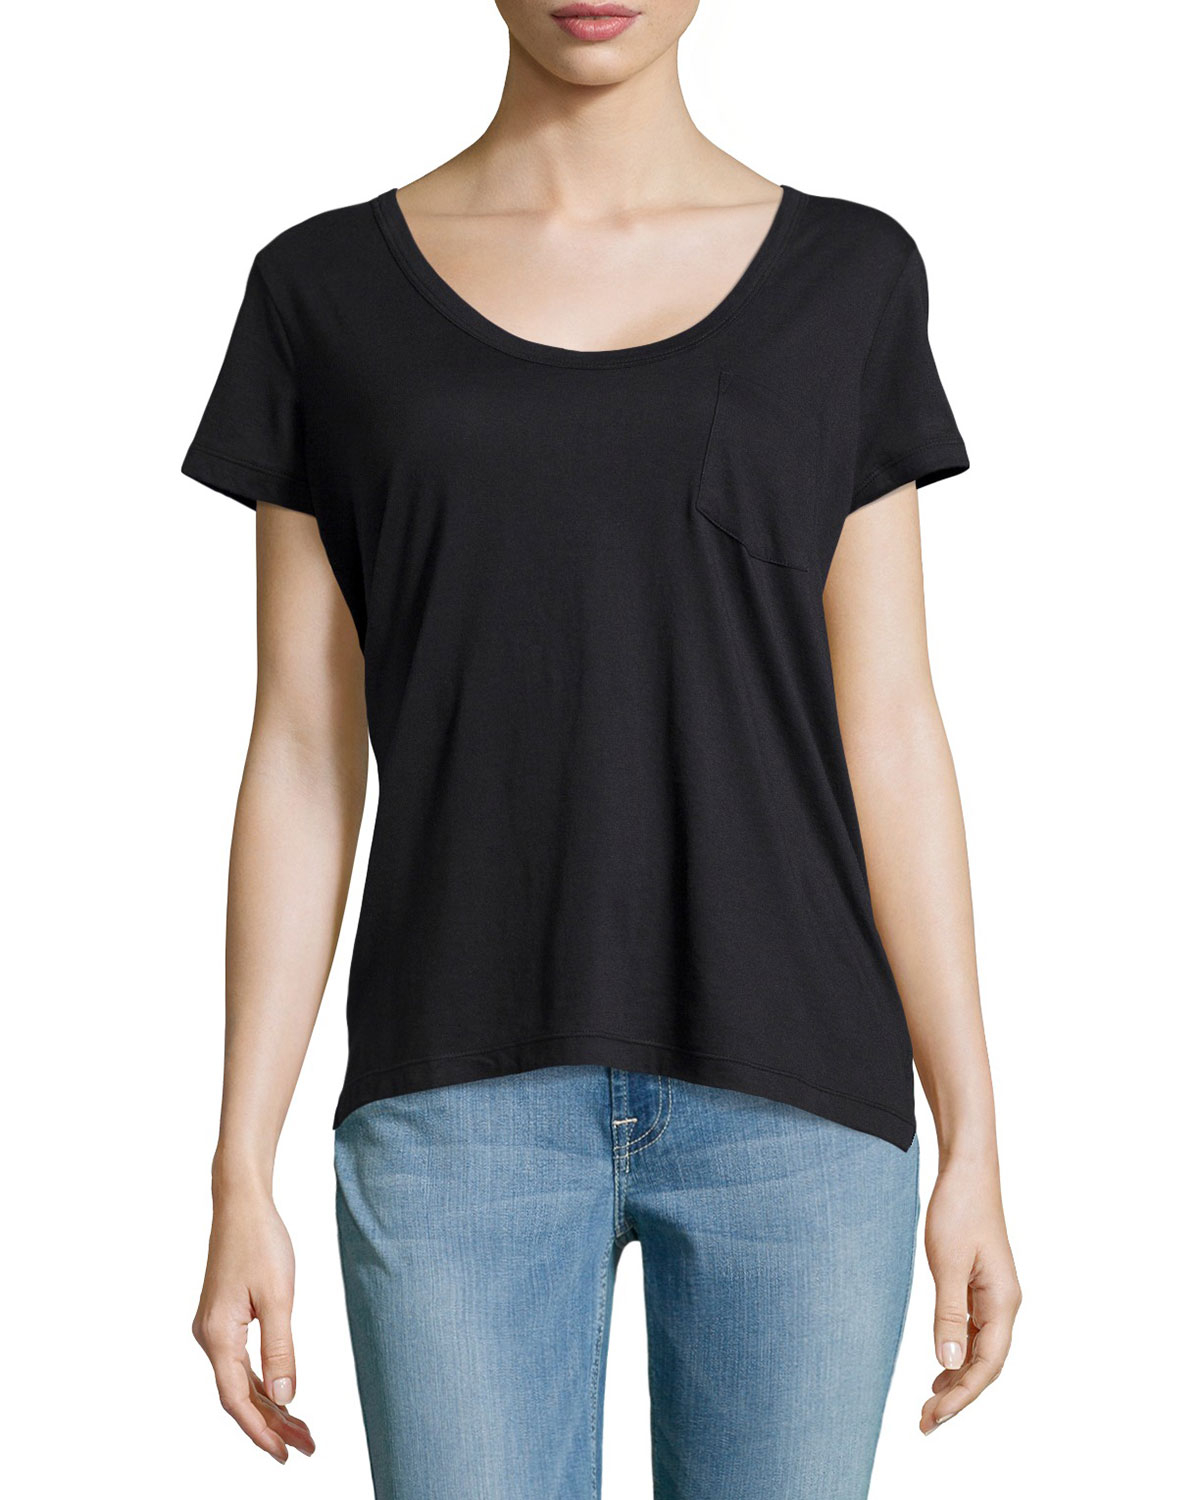 James perse short sleeve pocket tee in black lyst for James perse t shirts sale